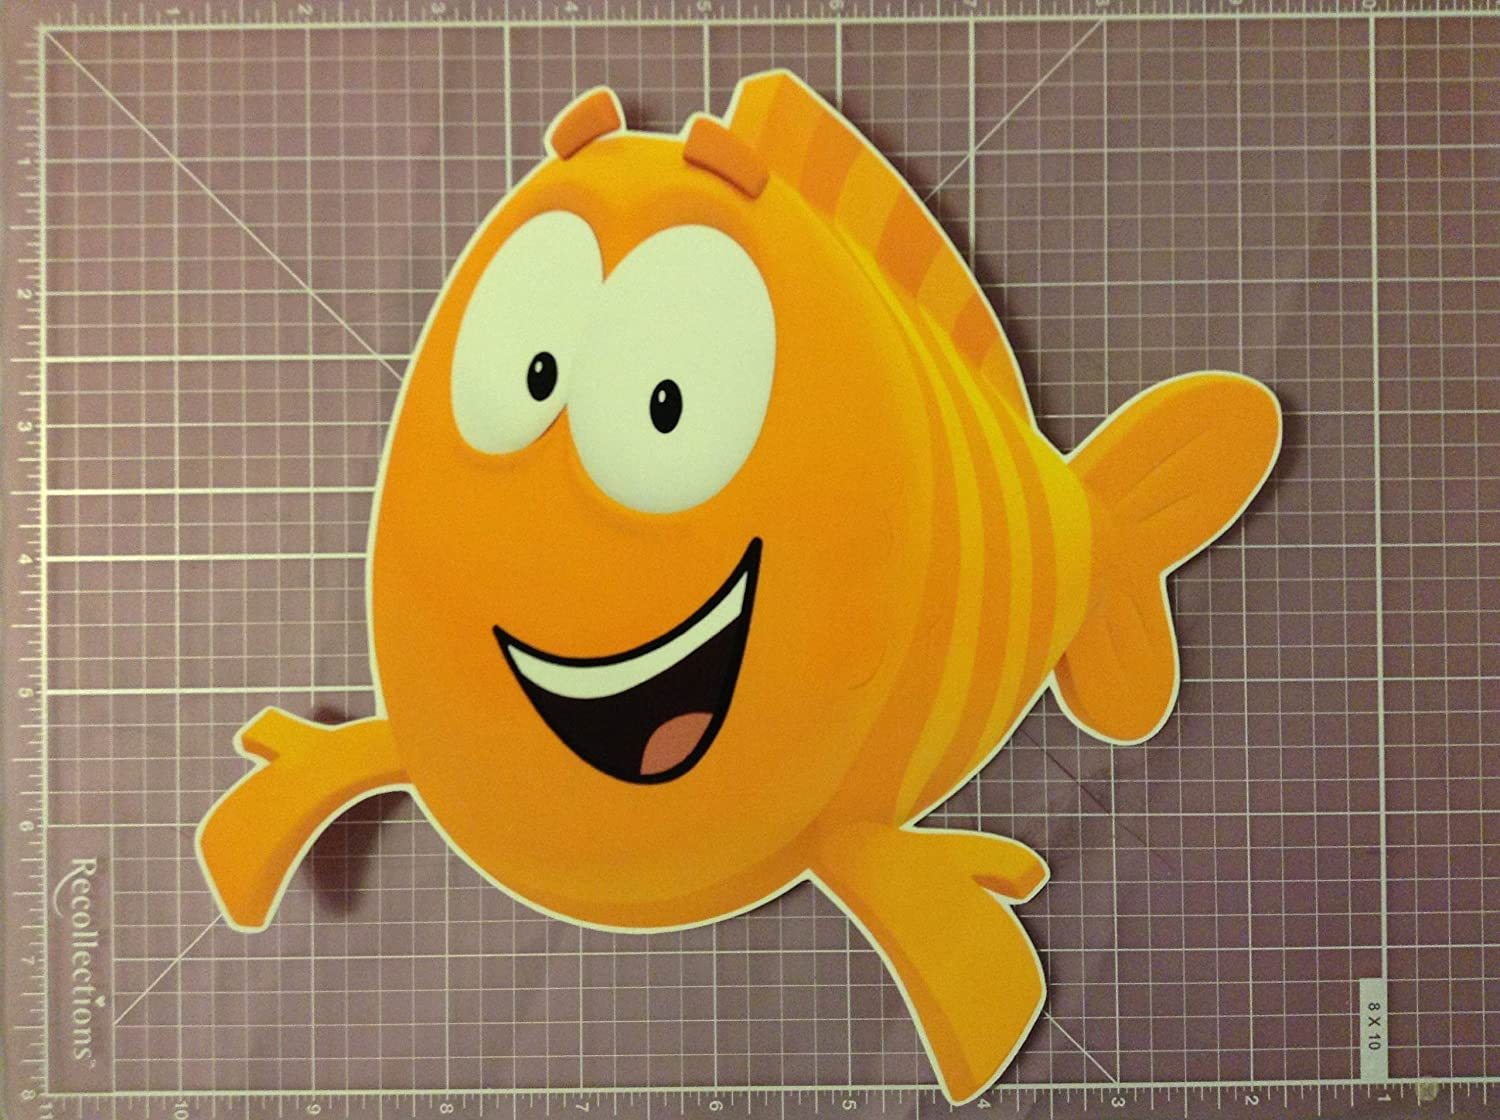 bubble guppies set of 8 removable wall stickers 10 bubble guppies set of 8 removable wall stickers 10